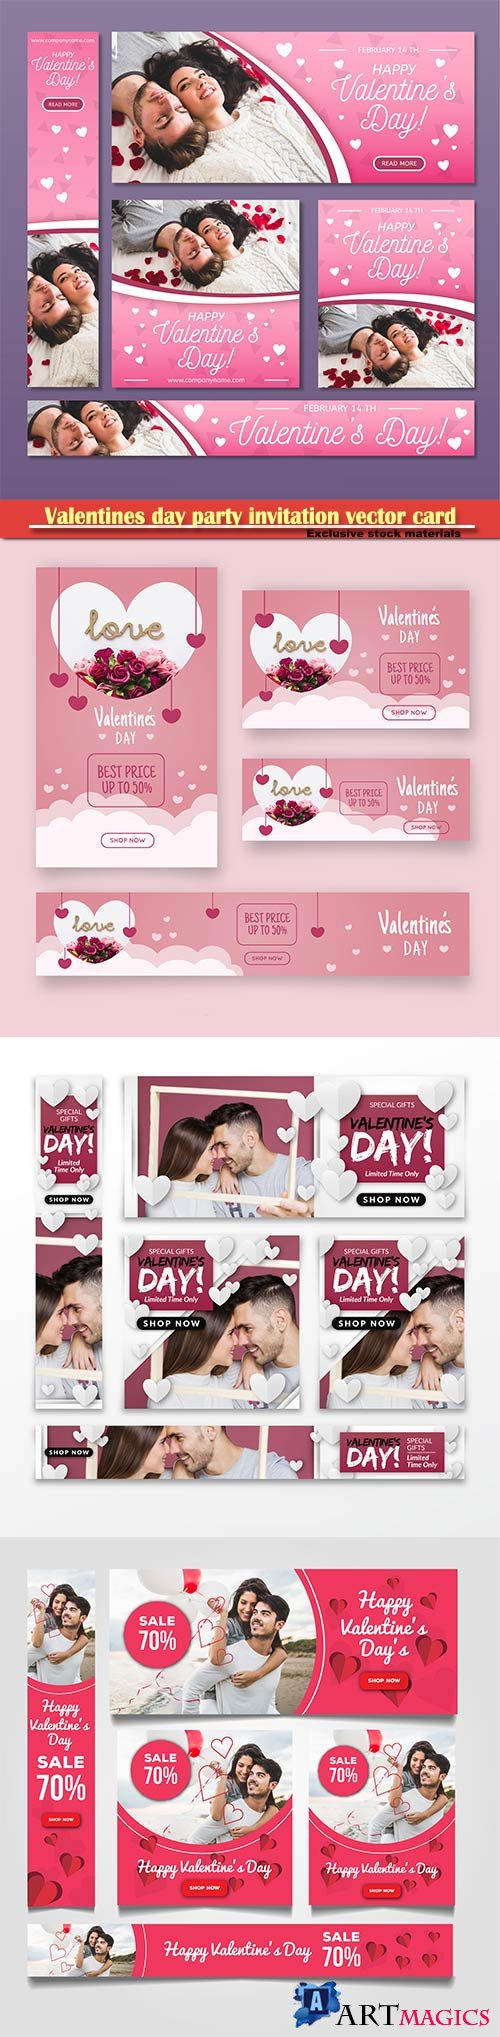 Valentines day party invitation vector card # 49